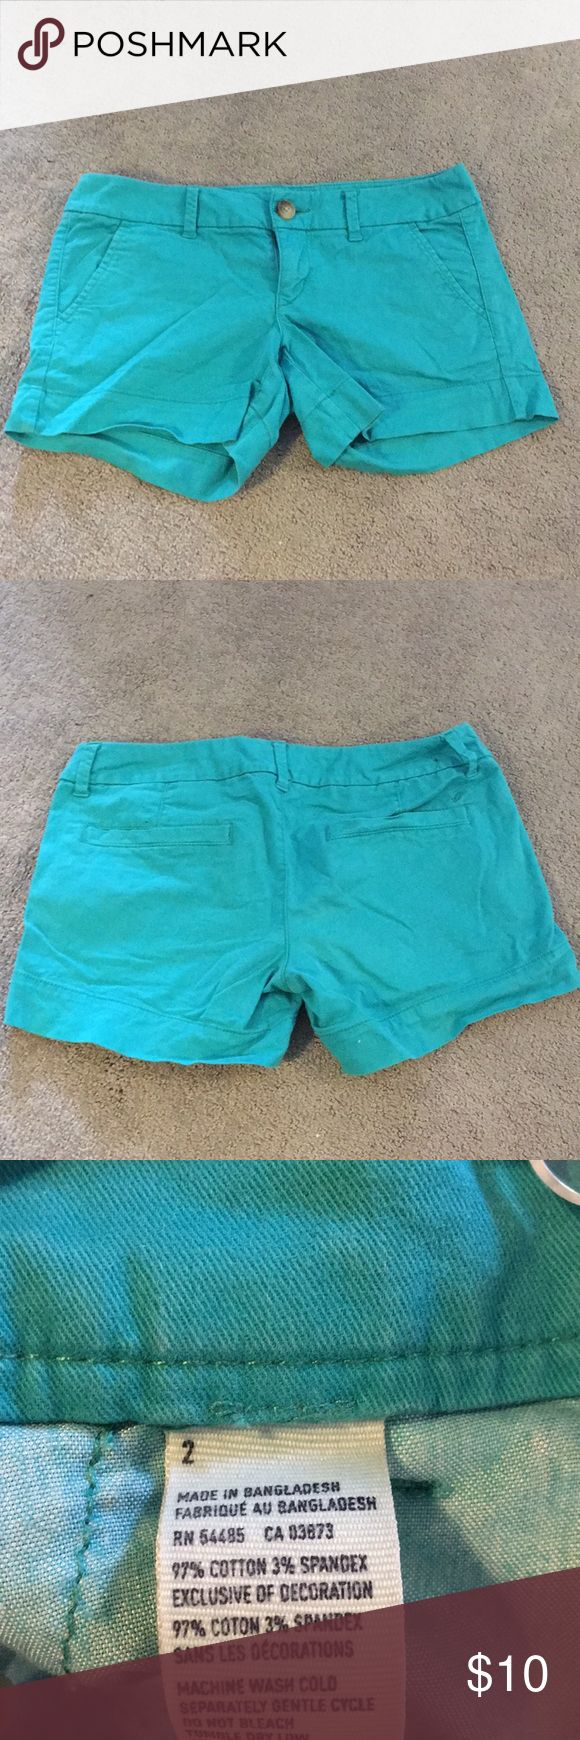 American Eagle super stretch teal shorts Very comfortable teal shorts American Eagle Outfitters Shorts